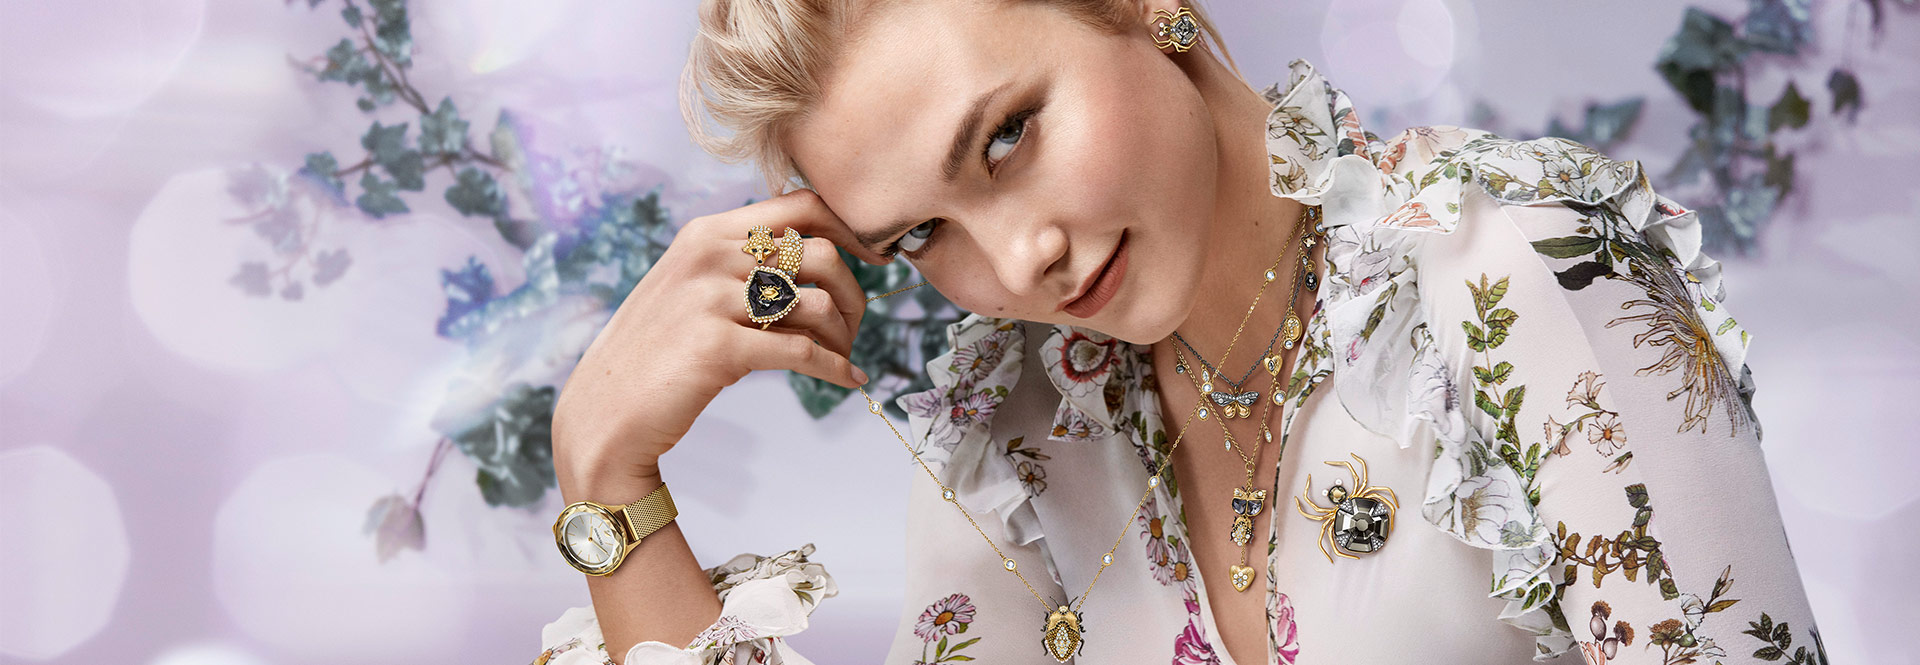 New Winter Collection Swarovski introduces Tales of the Forest, a mystical winter collection of nature-inspired jewelry.